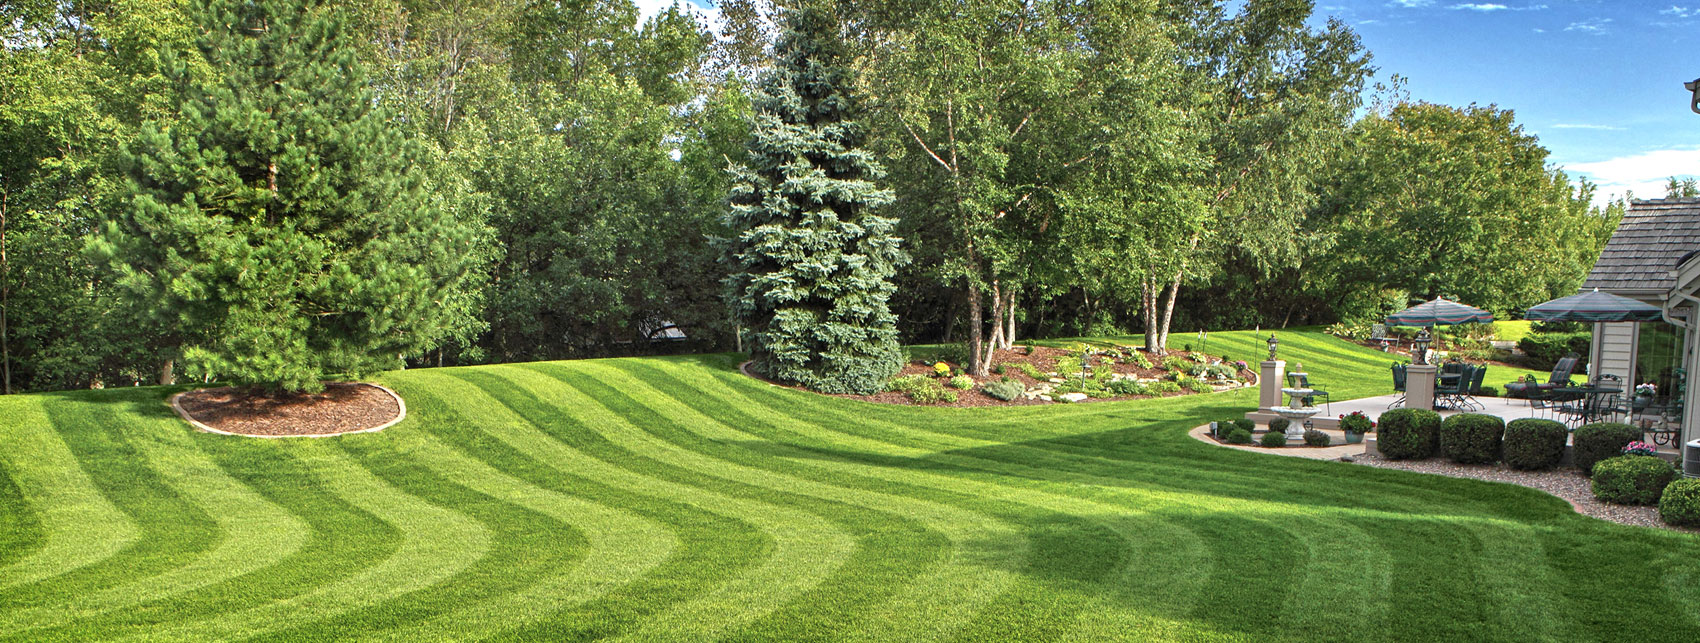 Garden Clean Up Services in North Shore